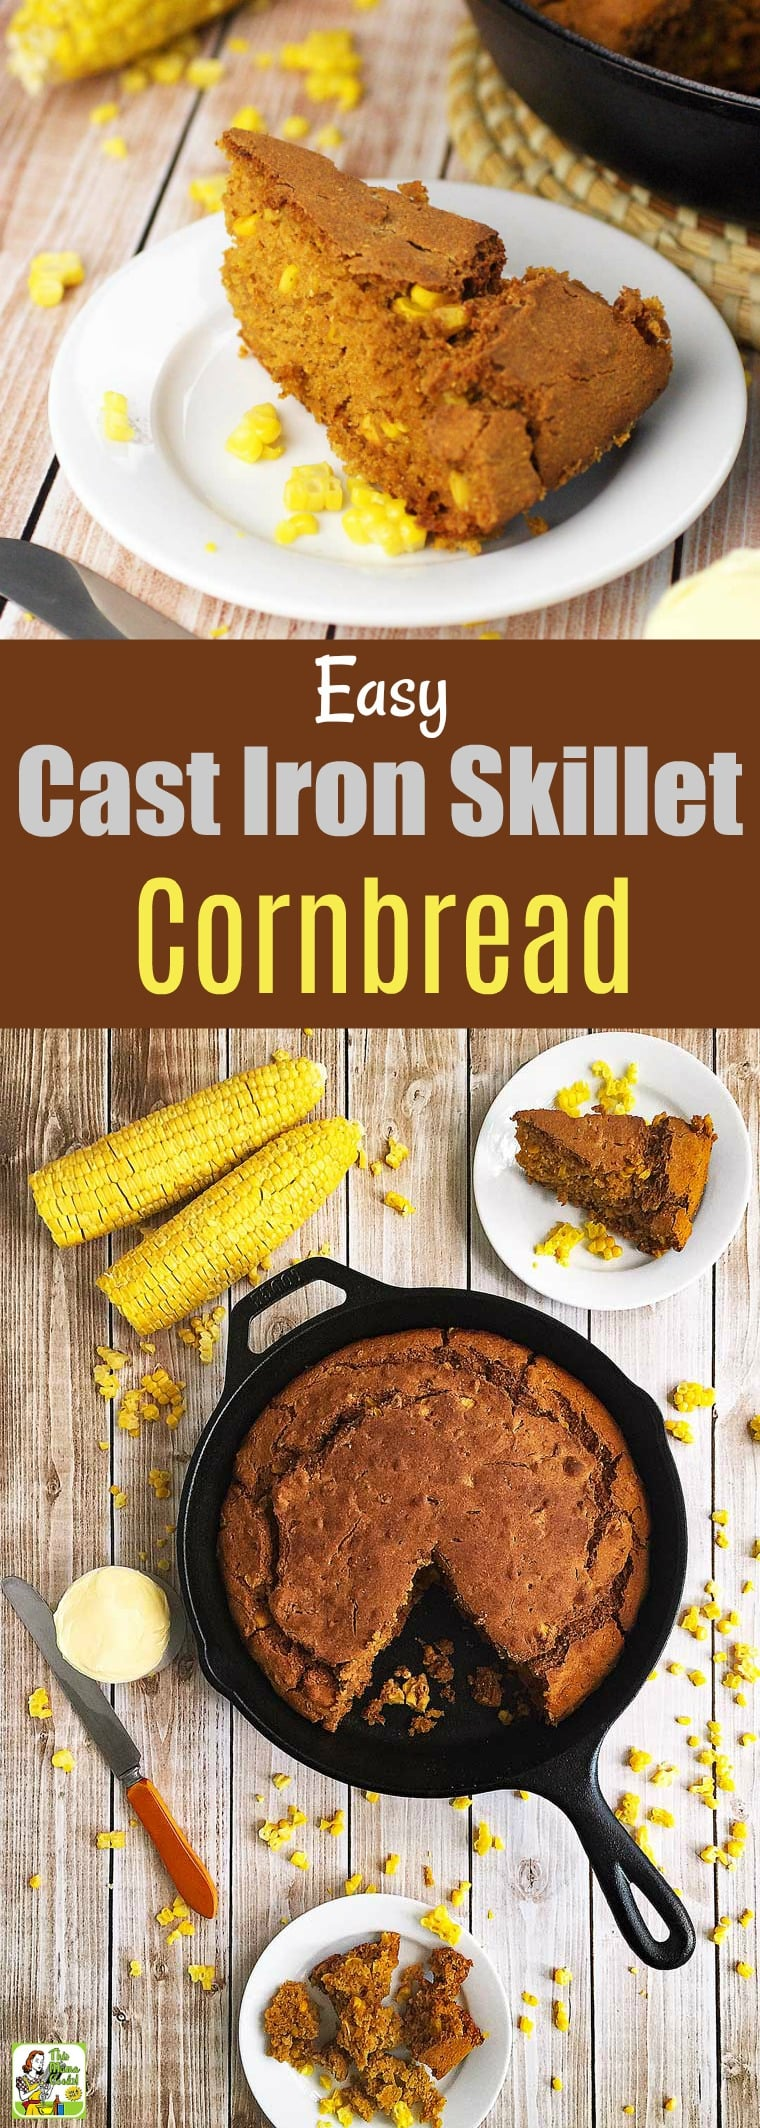 This Easy Cast Iron Skillet Cornbread is a wonderful side dish for dinner or brunch. This skillet cornbread recipe is gluten free and dairy free. Add coconut milk to leftover cornbread with a little maple syrup, and heat up to make a breakfast mush. Includes a corn shucking hack. #SkilletBaking #SkilletCornBread #CastIronSkillet #CornBread #GlutenFree #DairyFree #CastIronBaking #CastIronSkilletBaking #OnePotCooking #Baking #Corn #CornShucking #CornShuckingHack